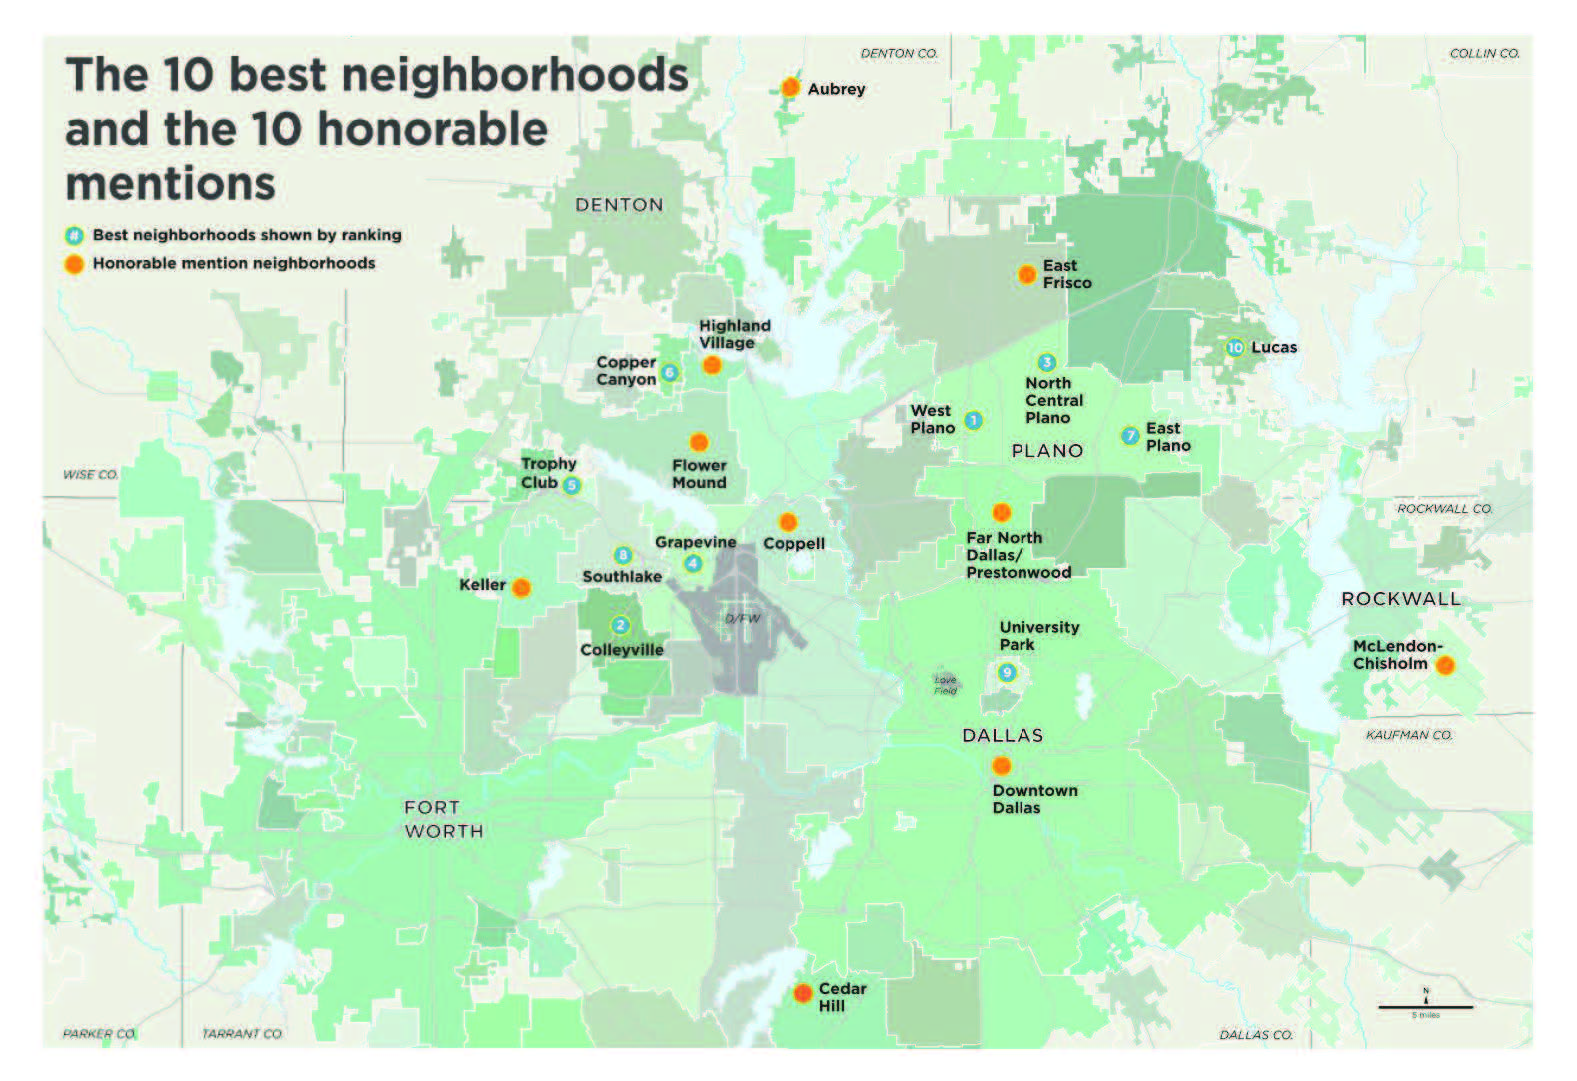 2015BestNeighborhoods.jpg